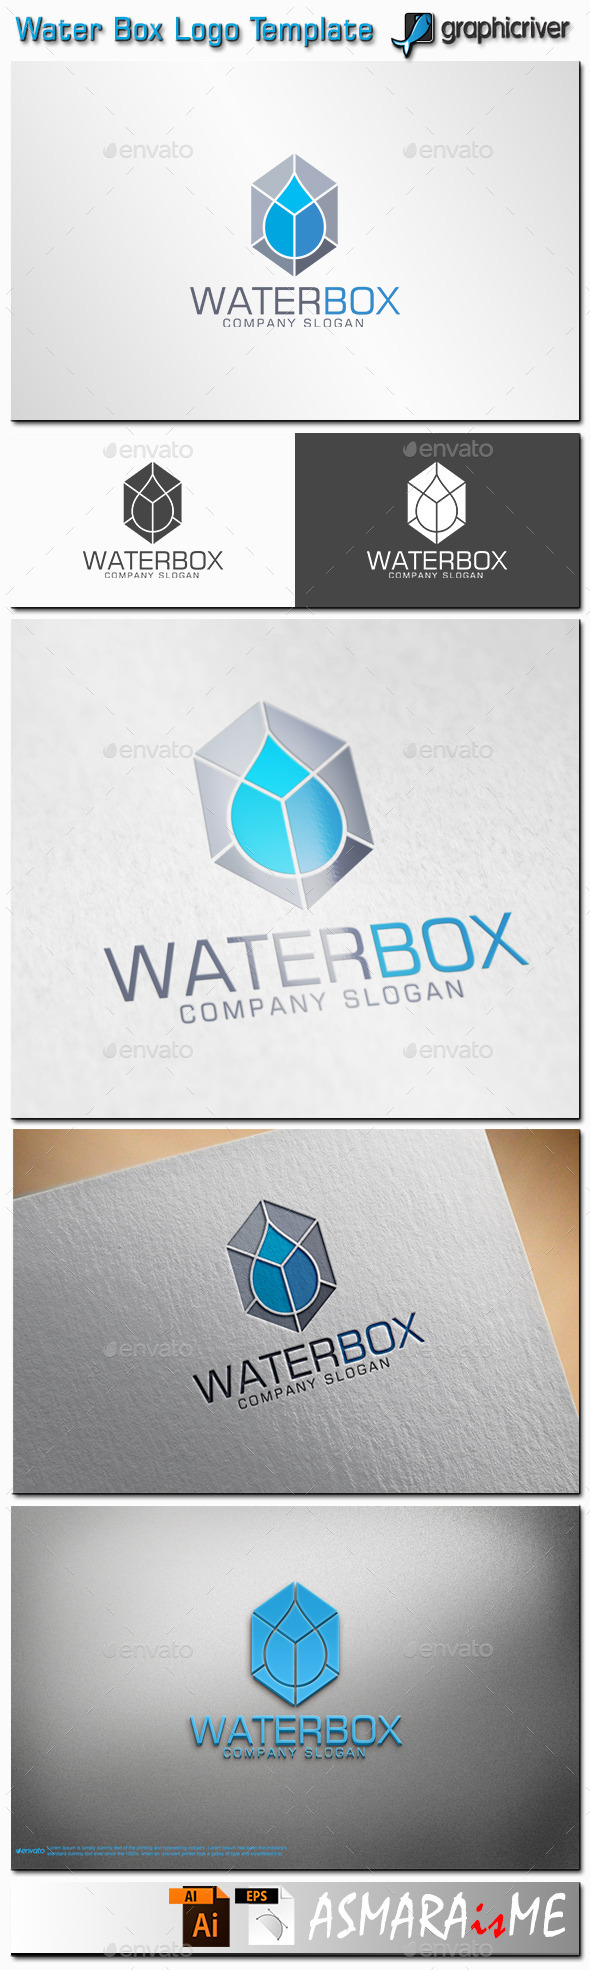 Water Box Logo - Abstract Logo Templates